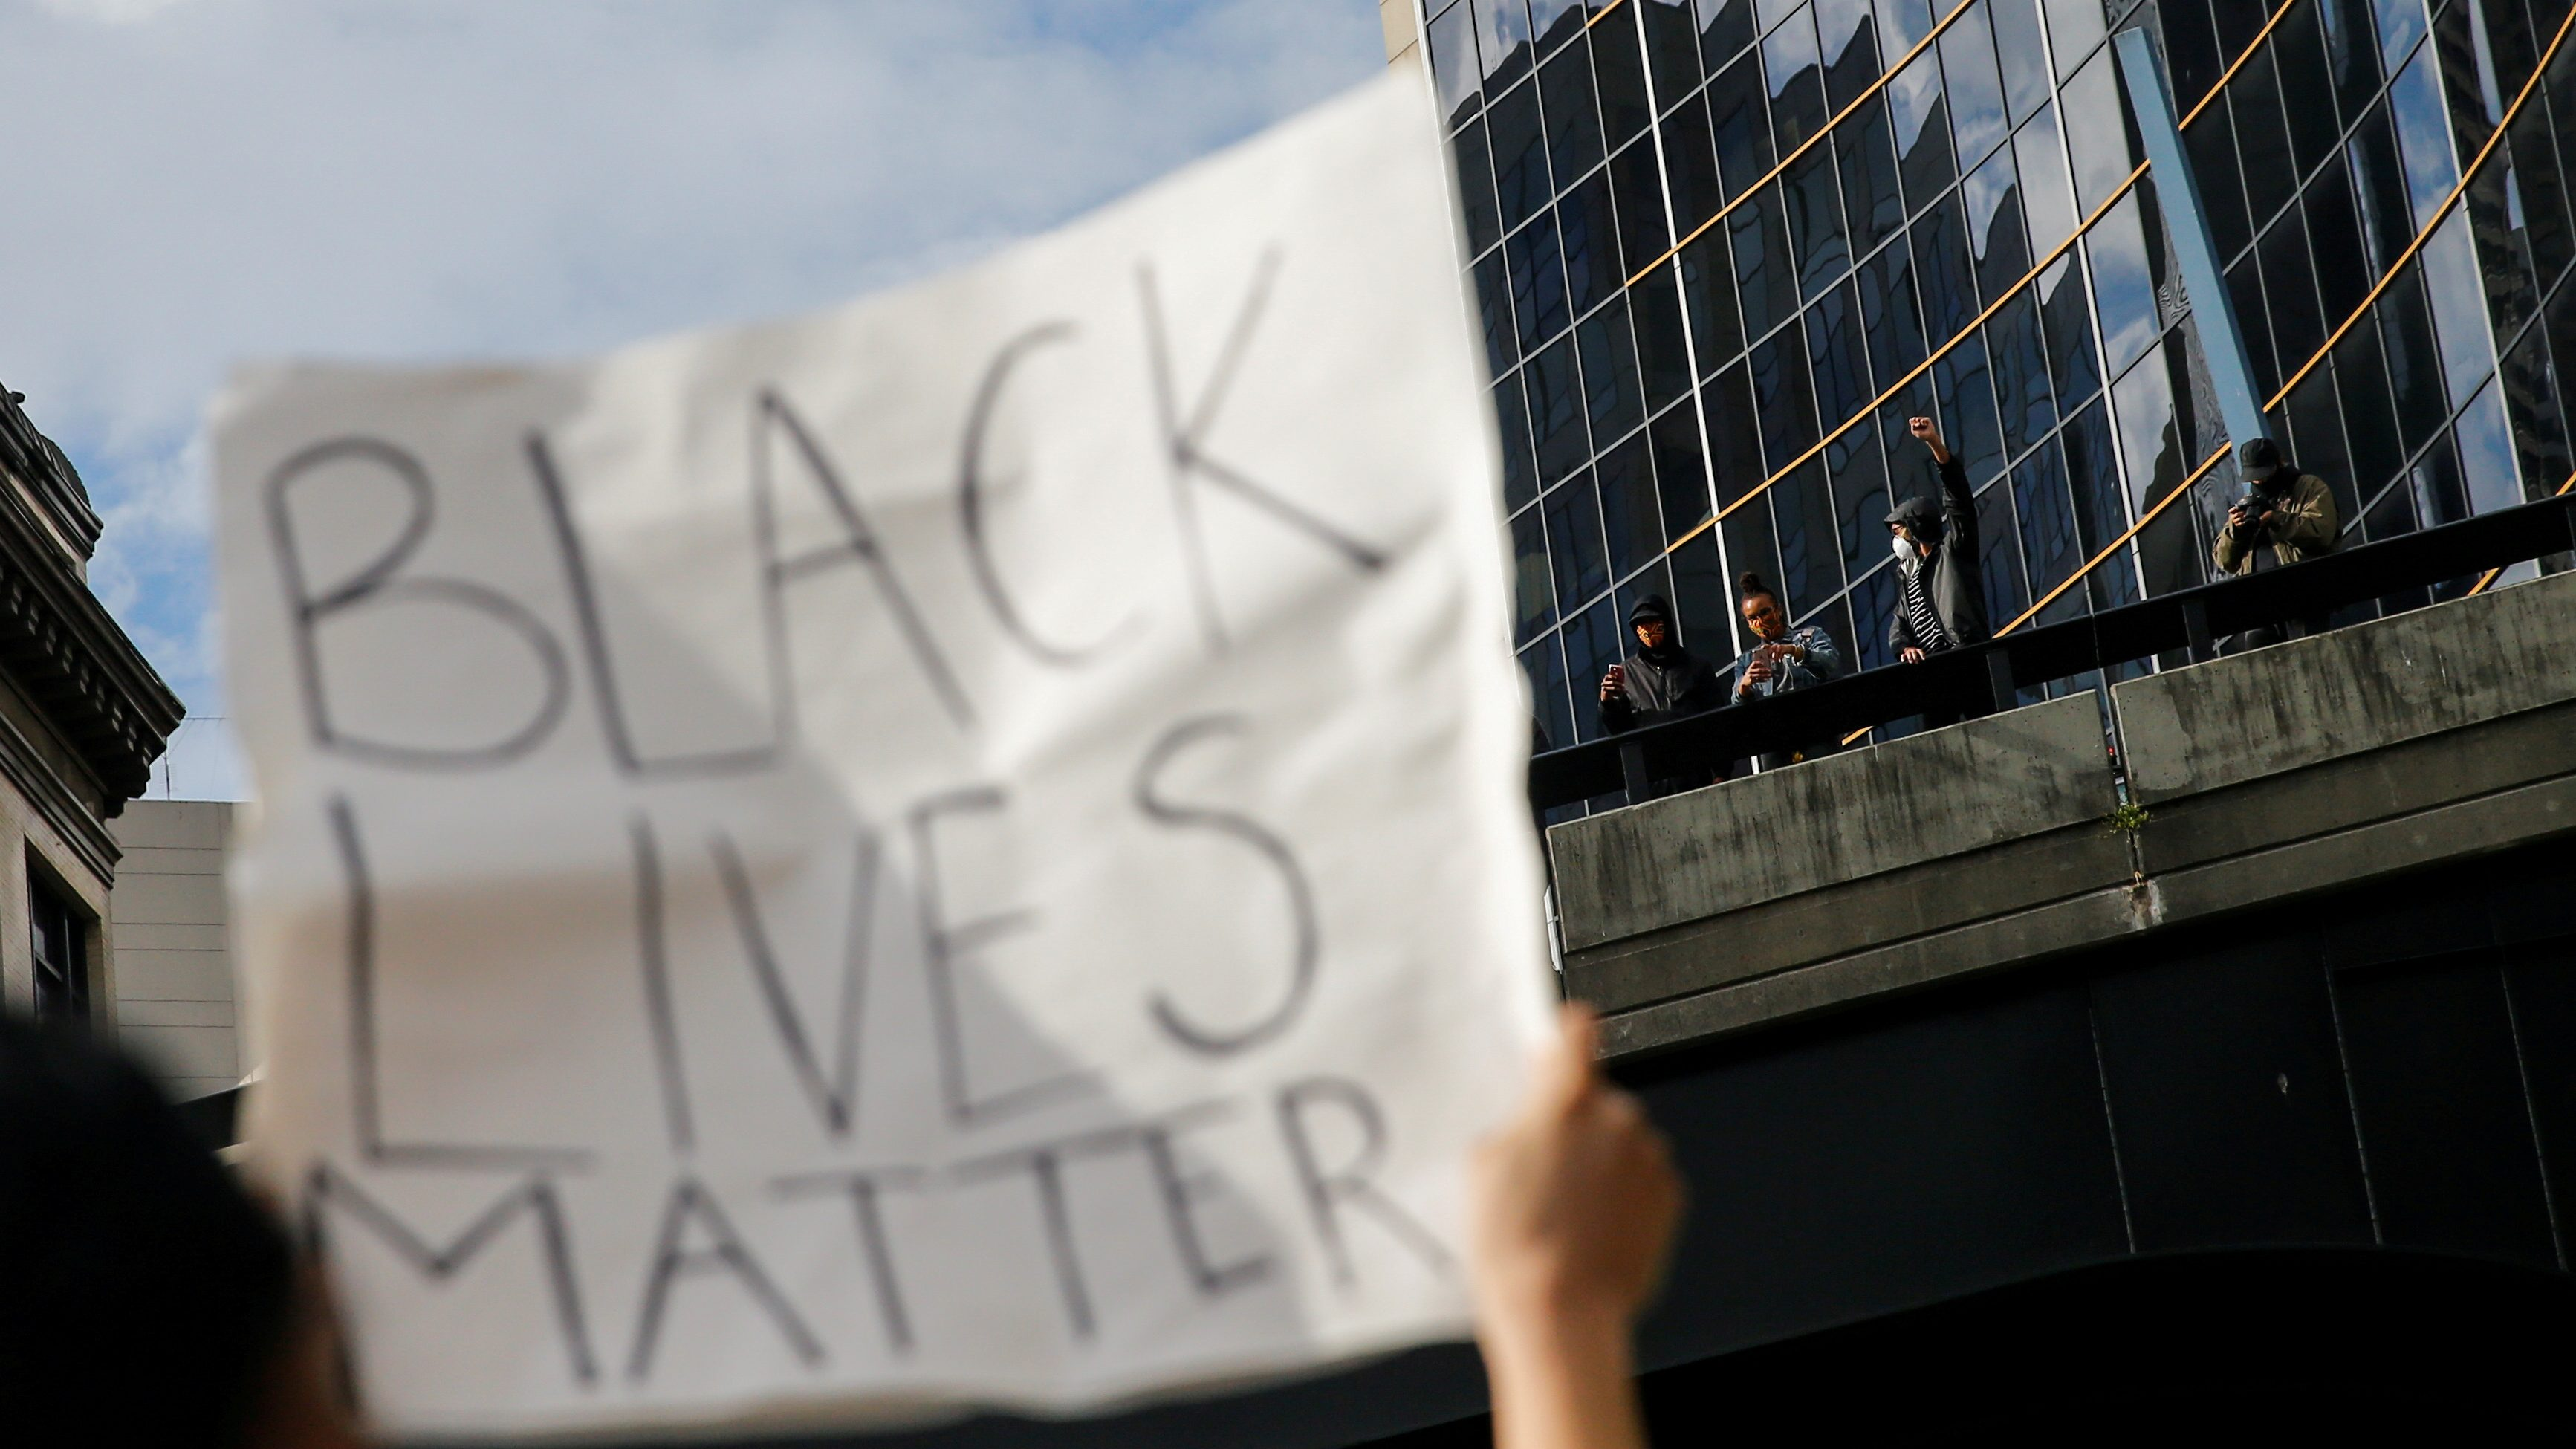 A protester holds a Black Lives Matter sign in front of an office building